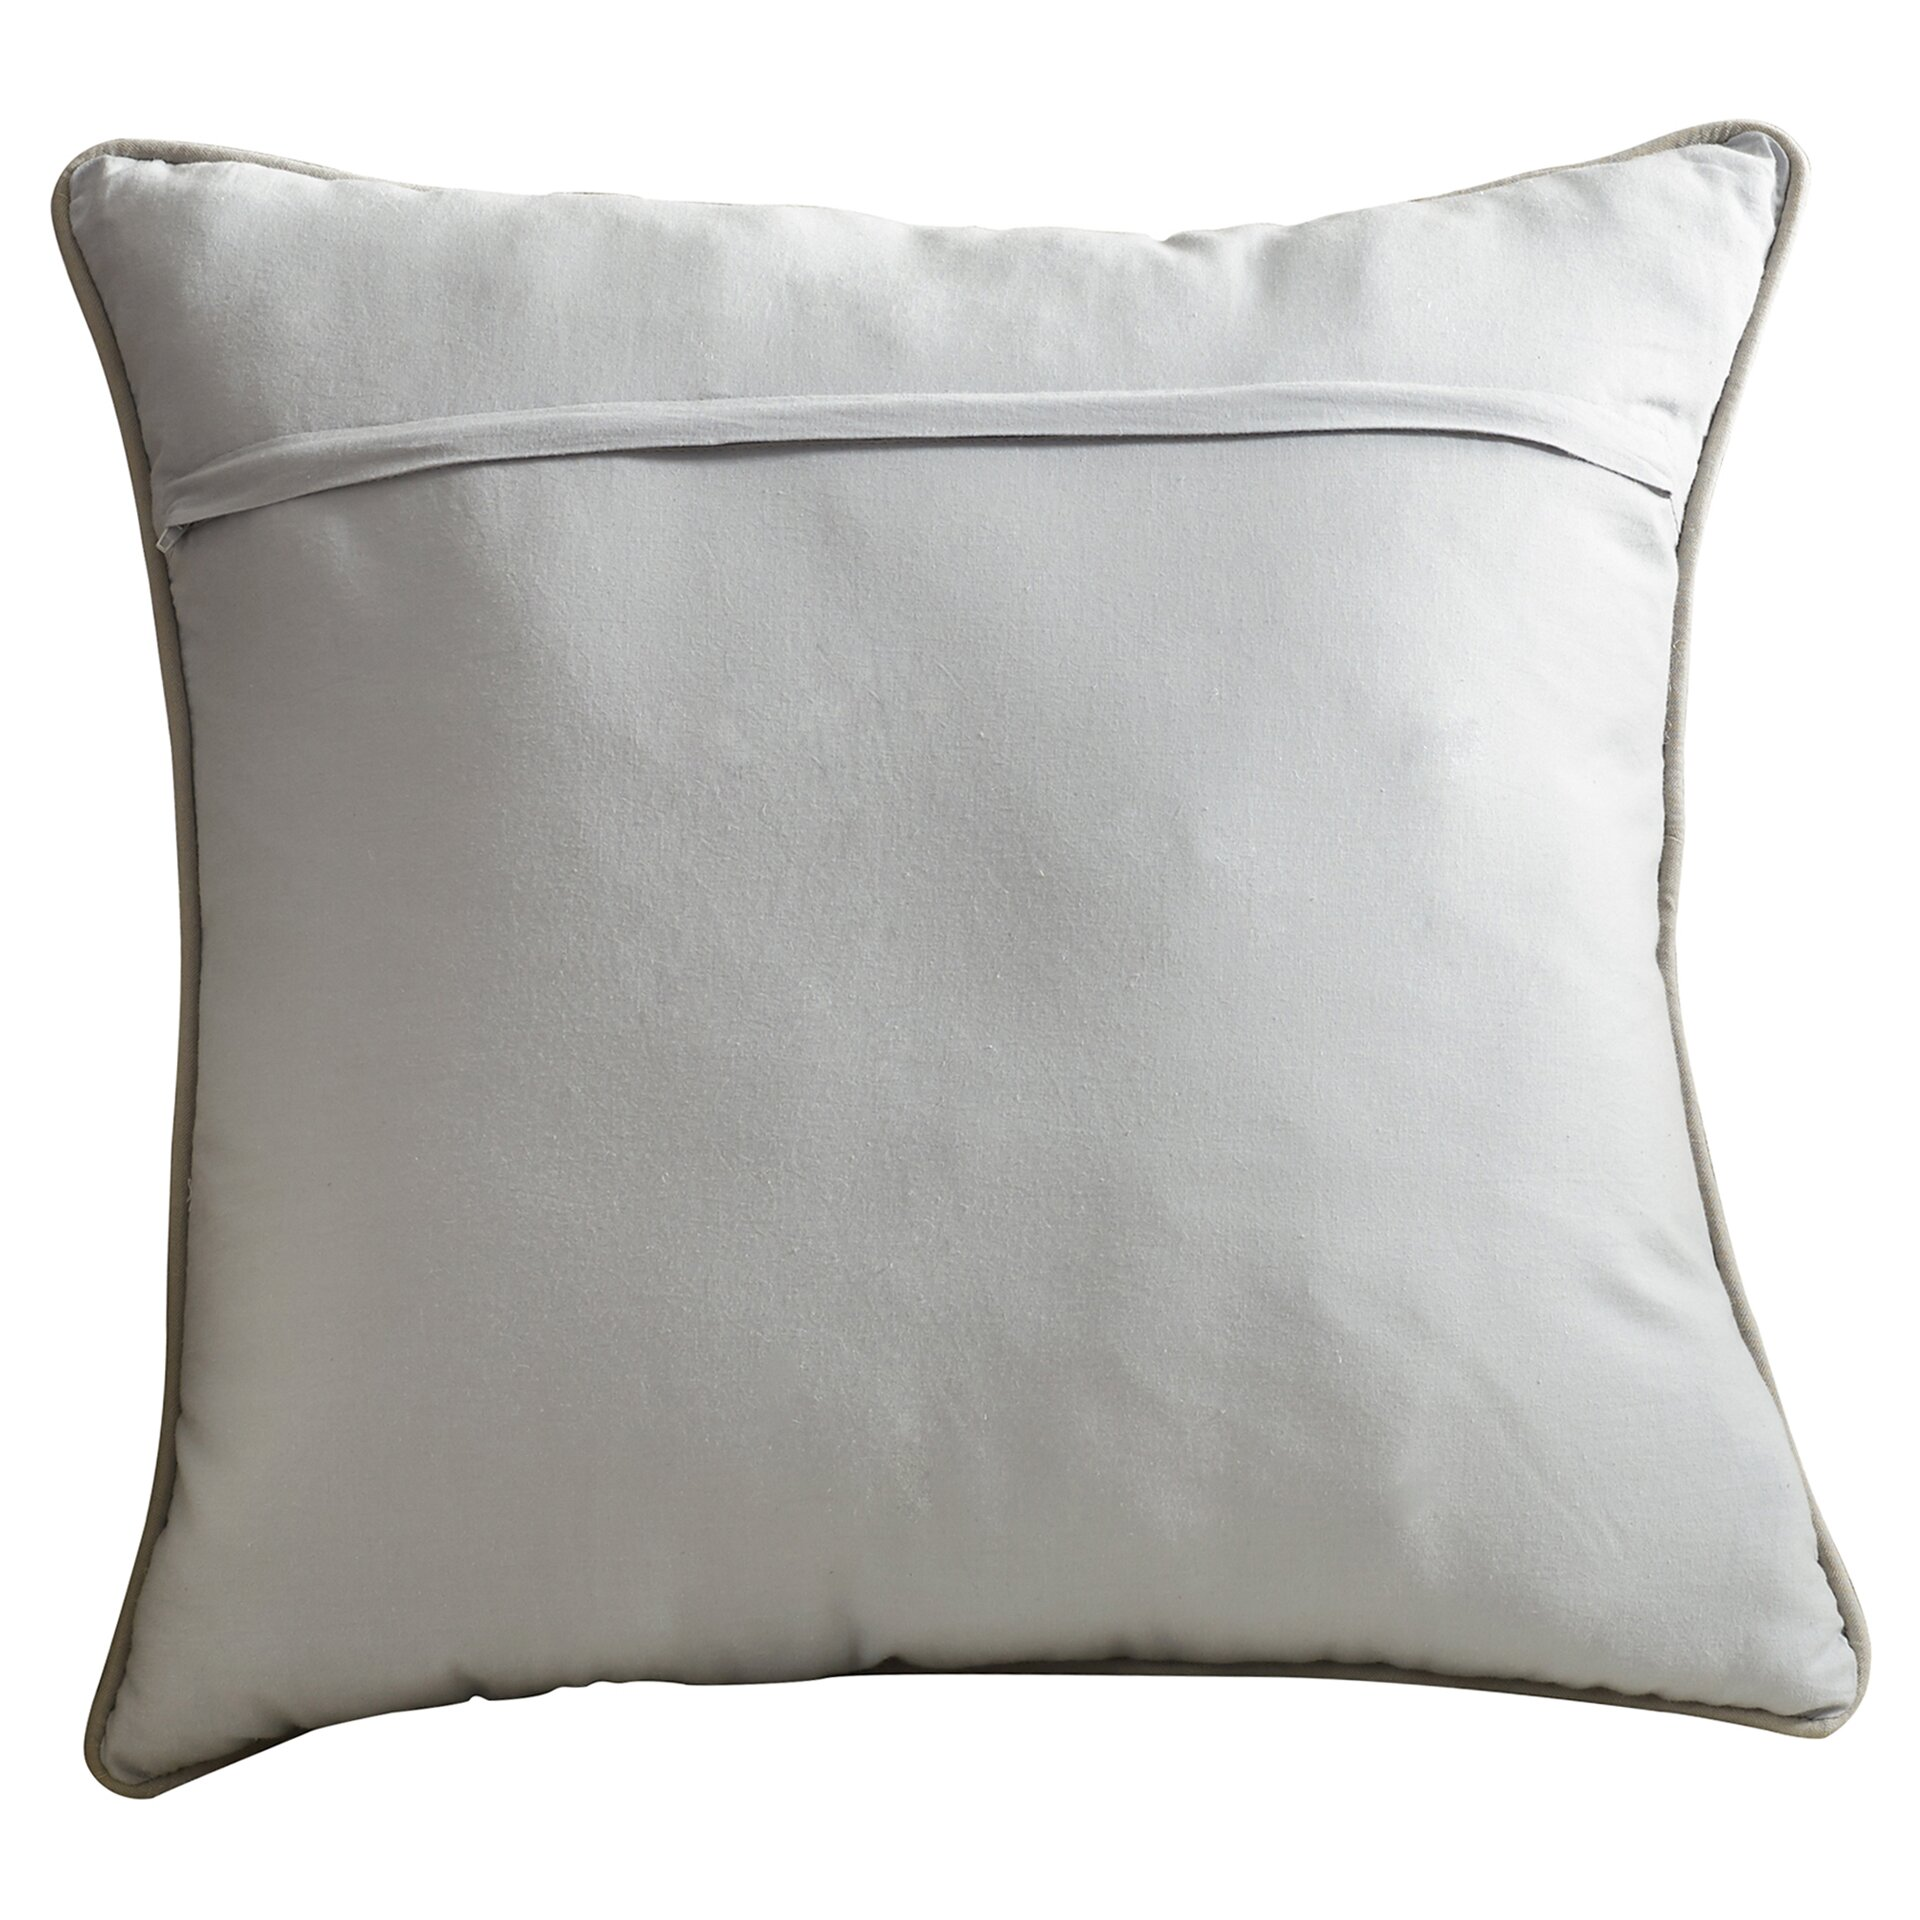 Alcott Hill Warrensville Cotton Linen Throw Pillow & Reviews Wayfair